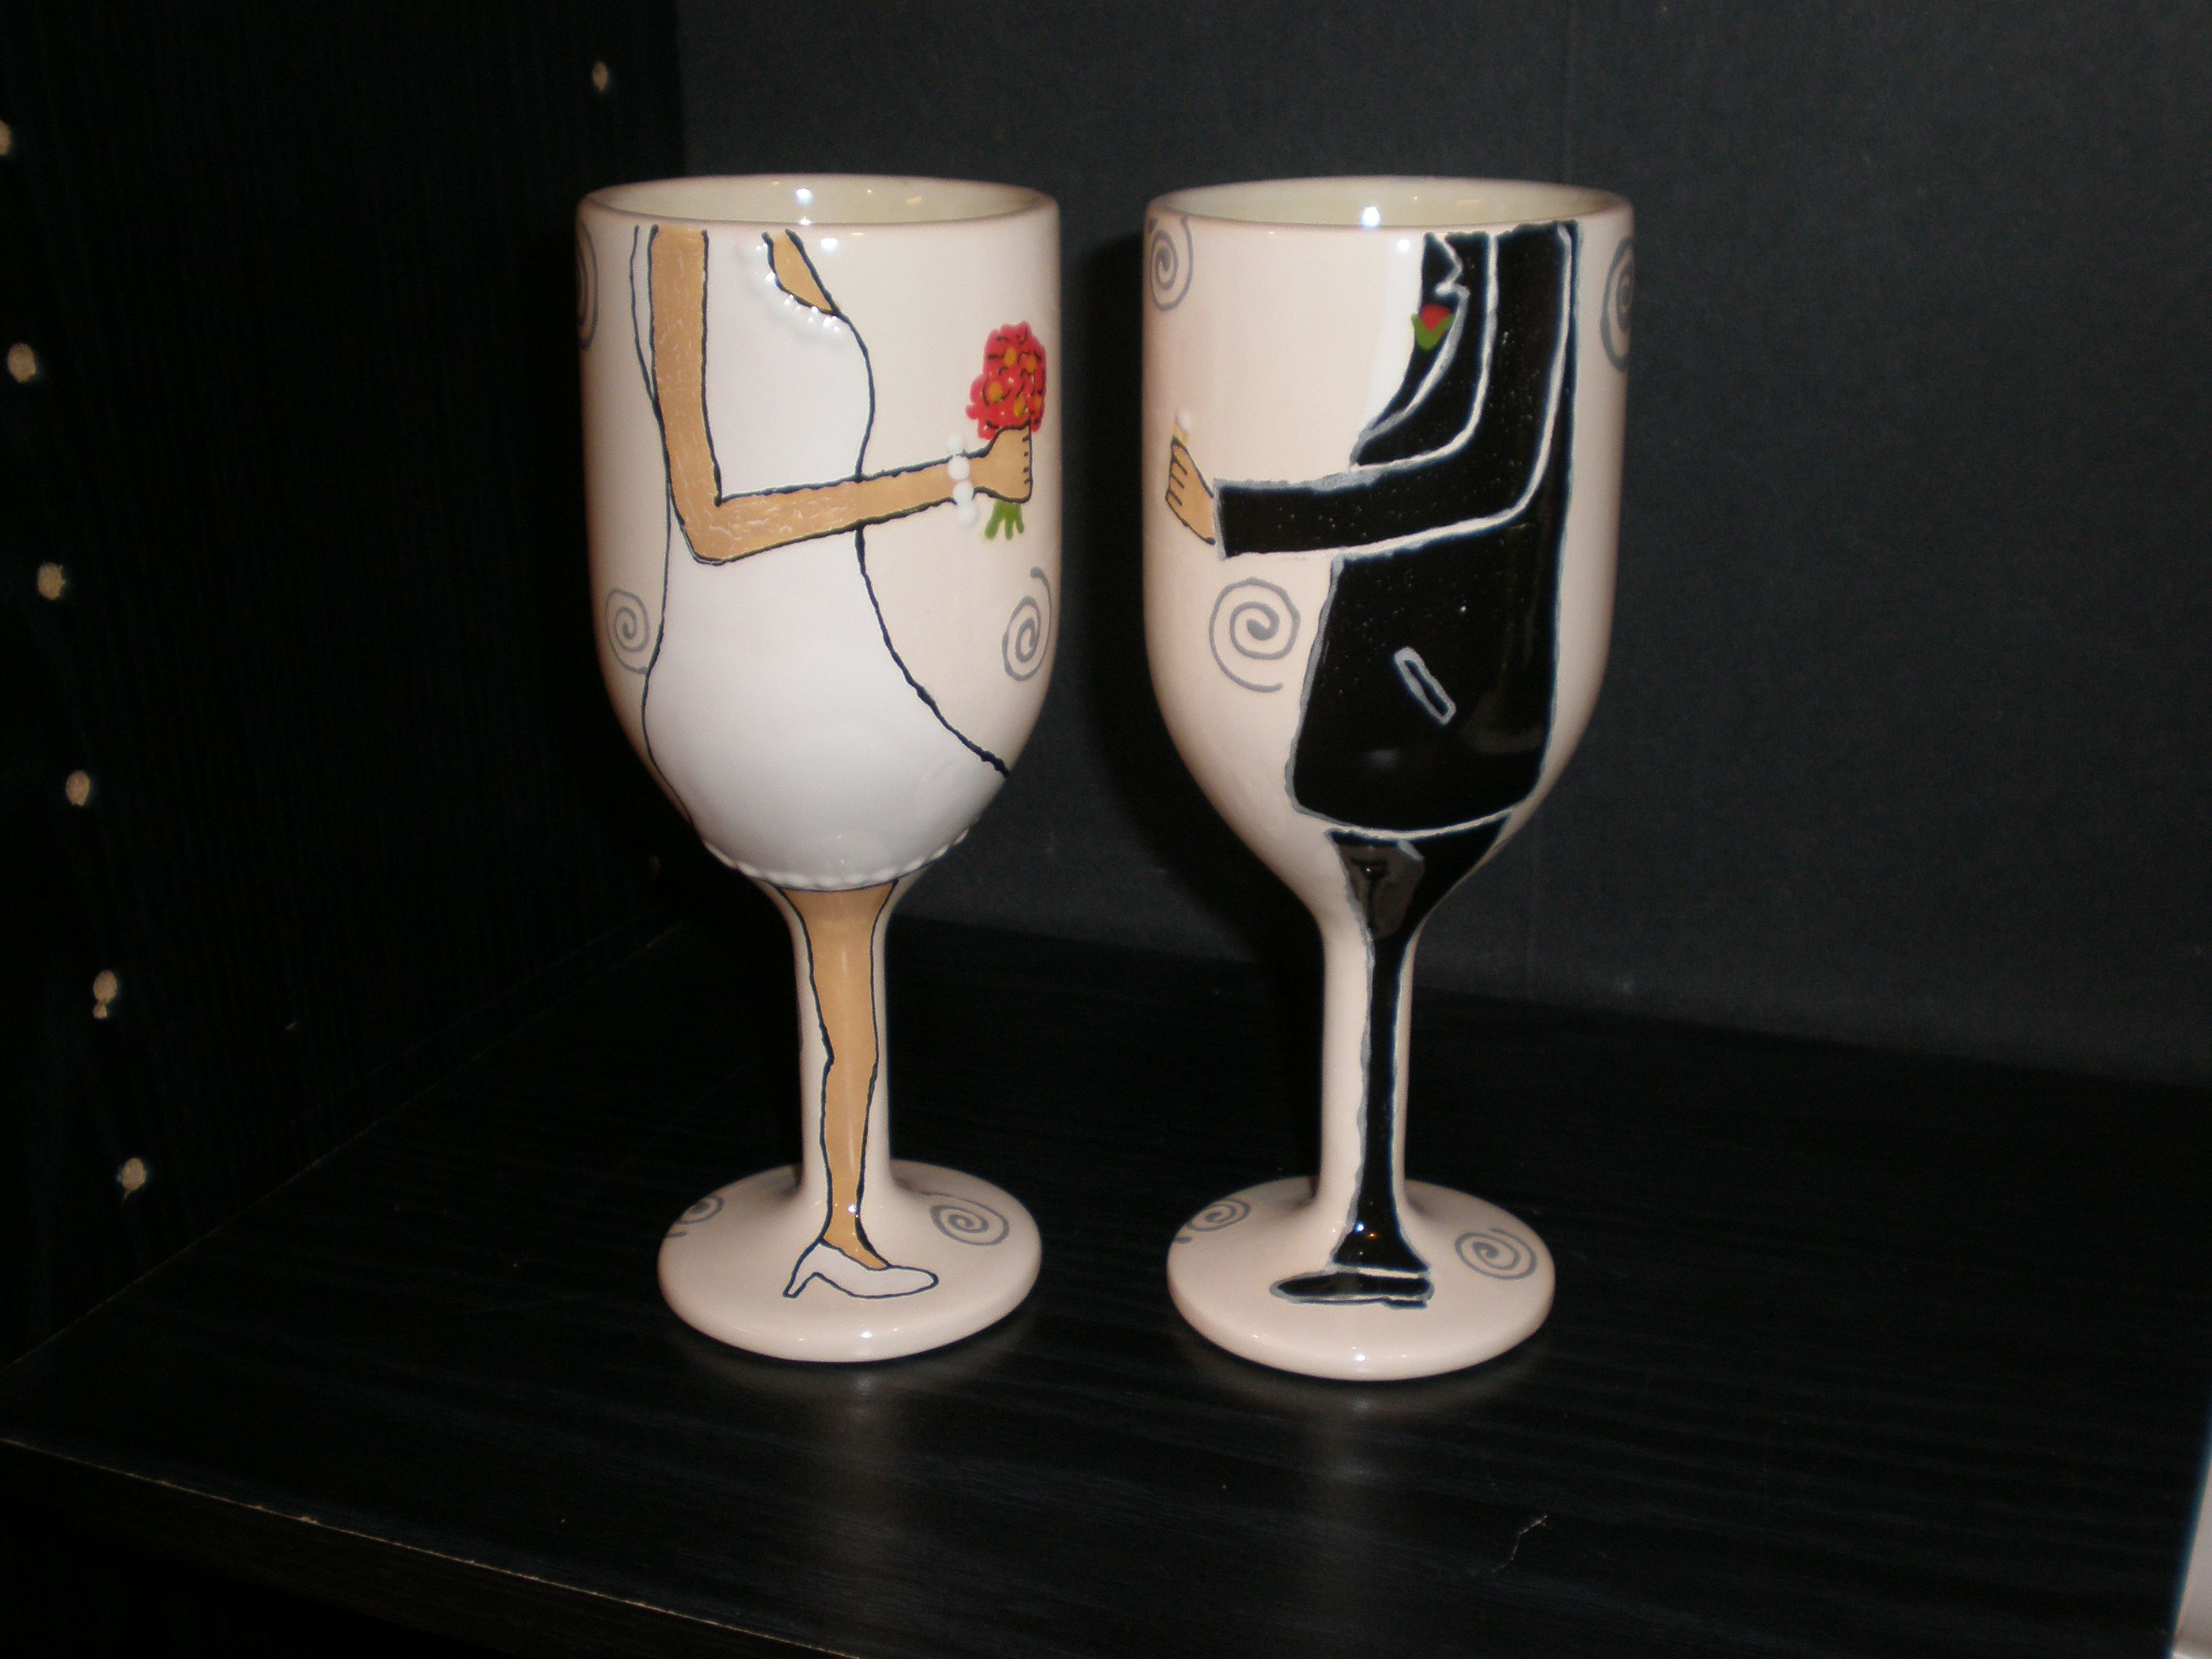 Cute Glassware How Cute Are These Bride And Groom Wine Glasses